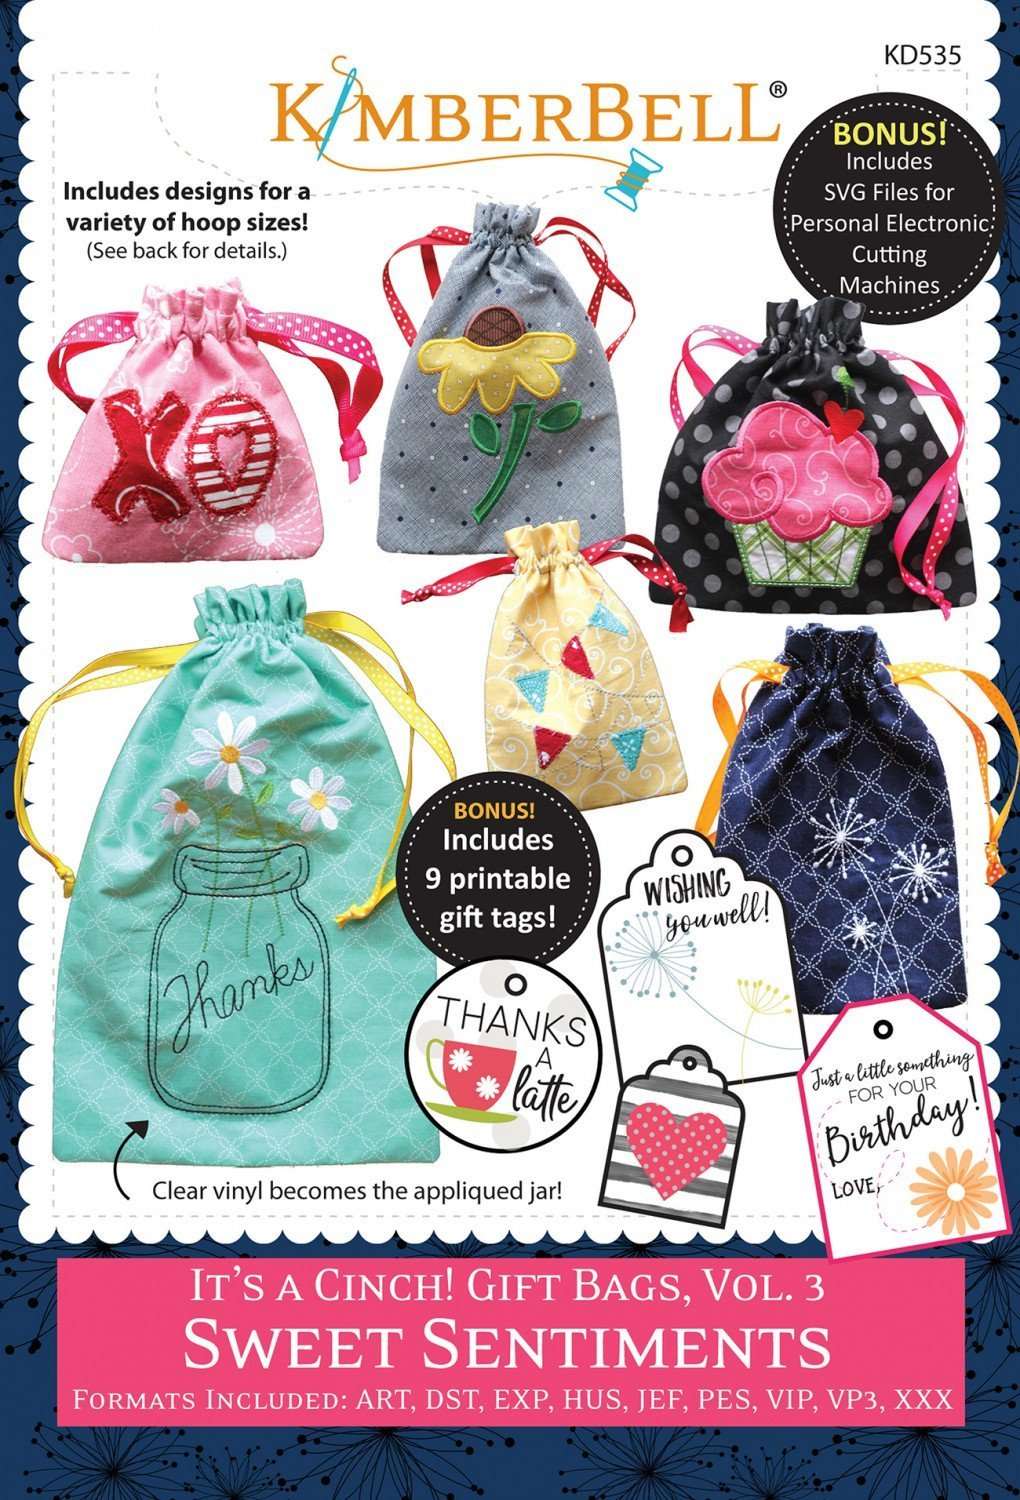 CD It's a Cinch Gift Bags Volume 3 Sweet Sentiments